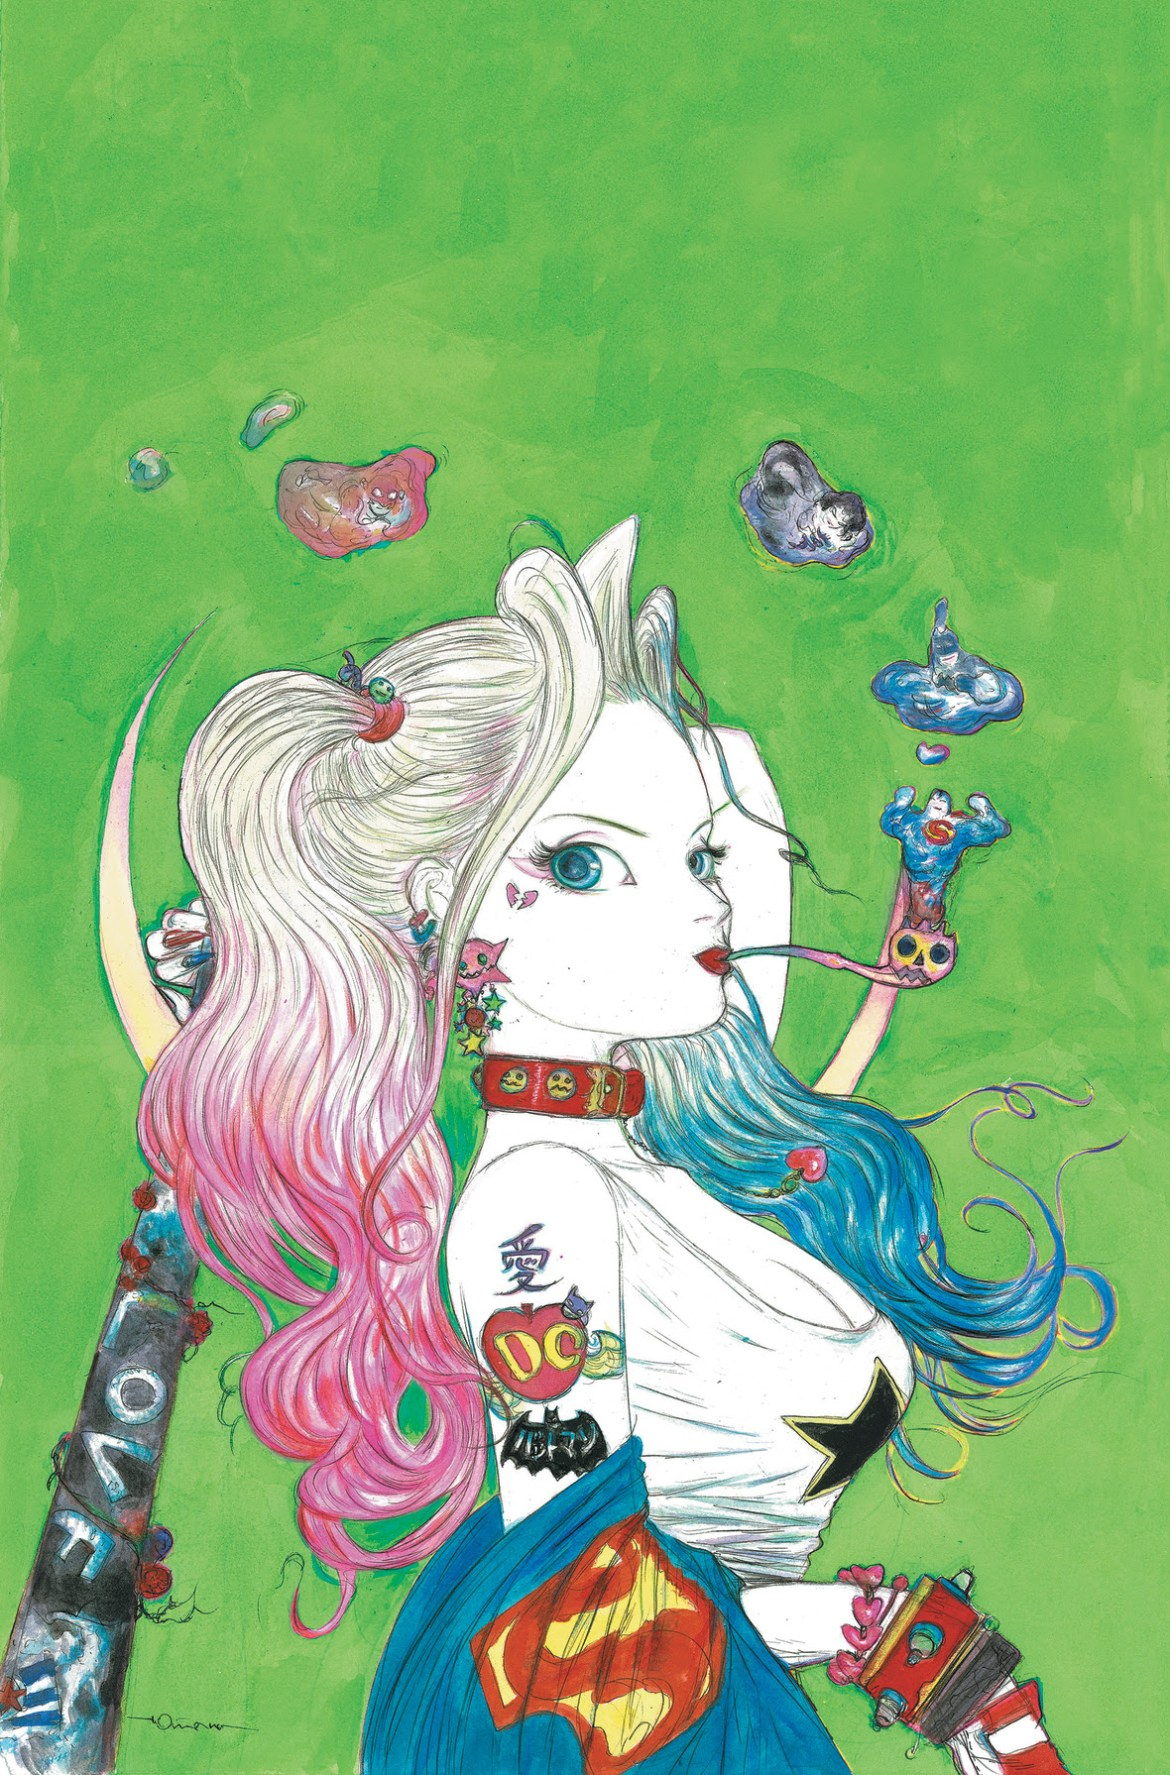 harleyquinnthank-you ComicList: DC Comics New Releases for 03/24/2021